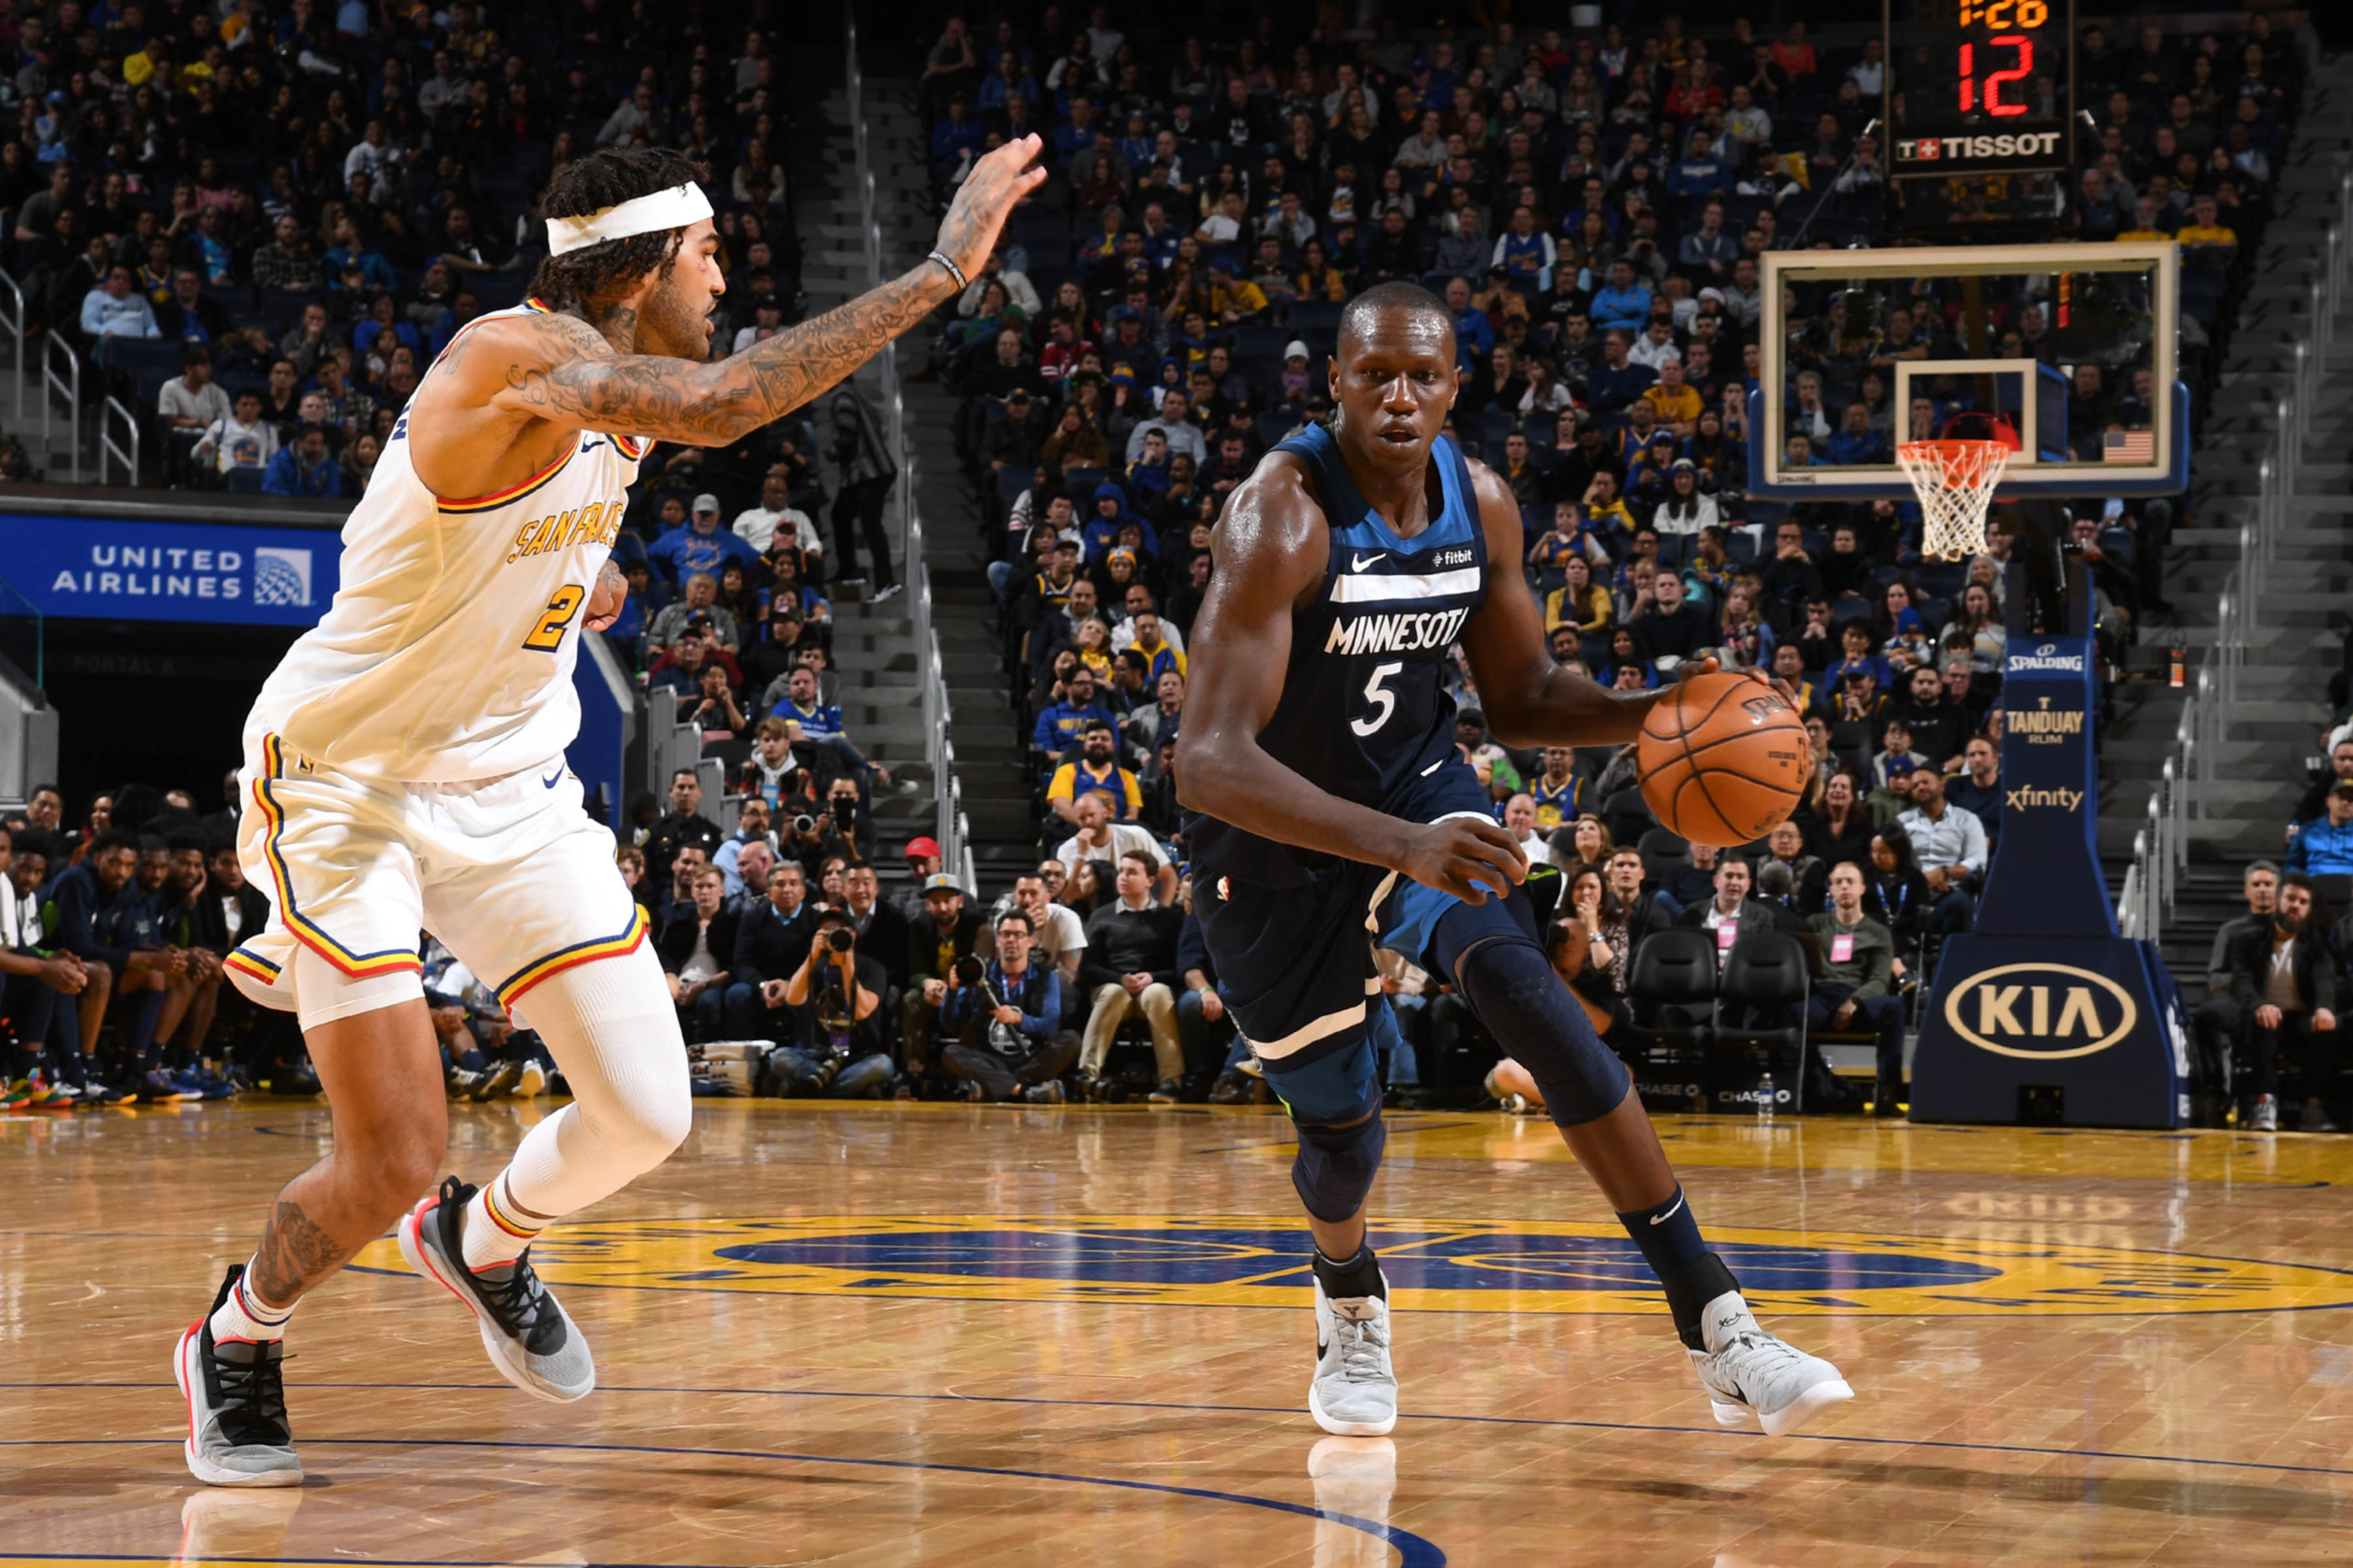 Timberwolves Vs Warriors Odds Injuries And What To Watch For